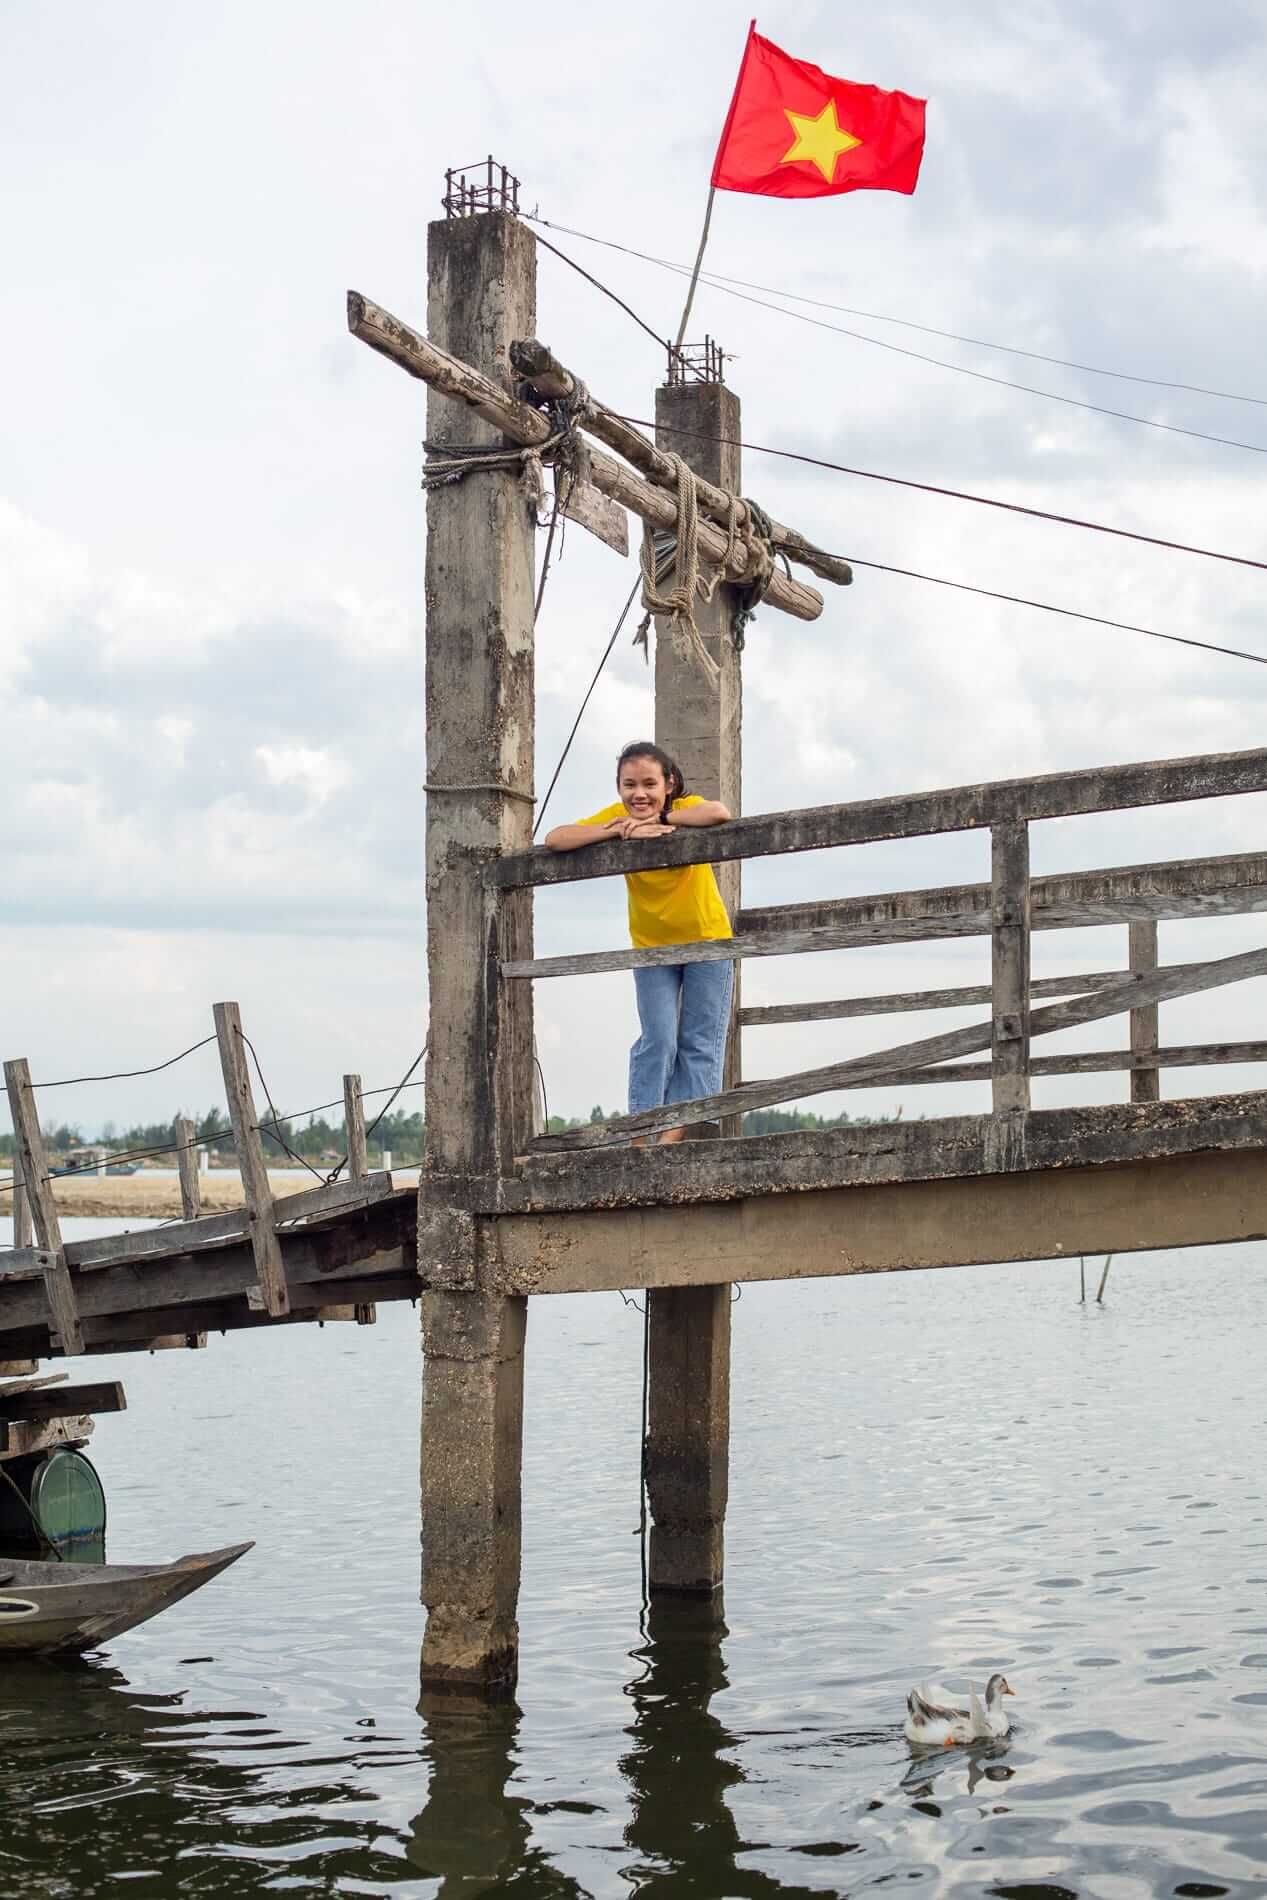 Tram at the floating bridge - What to do in Hoi An